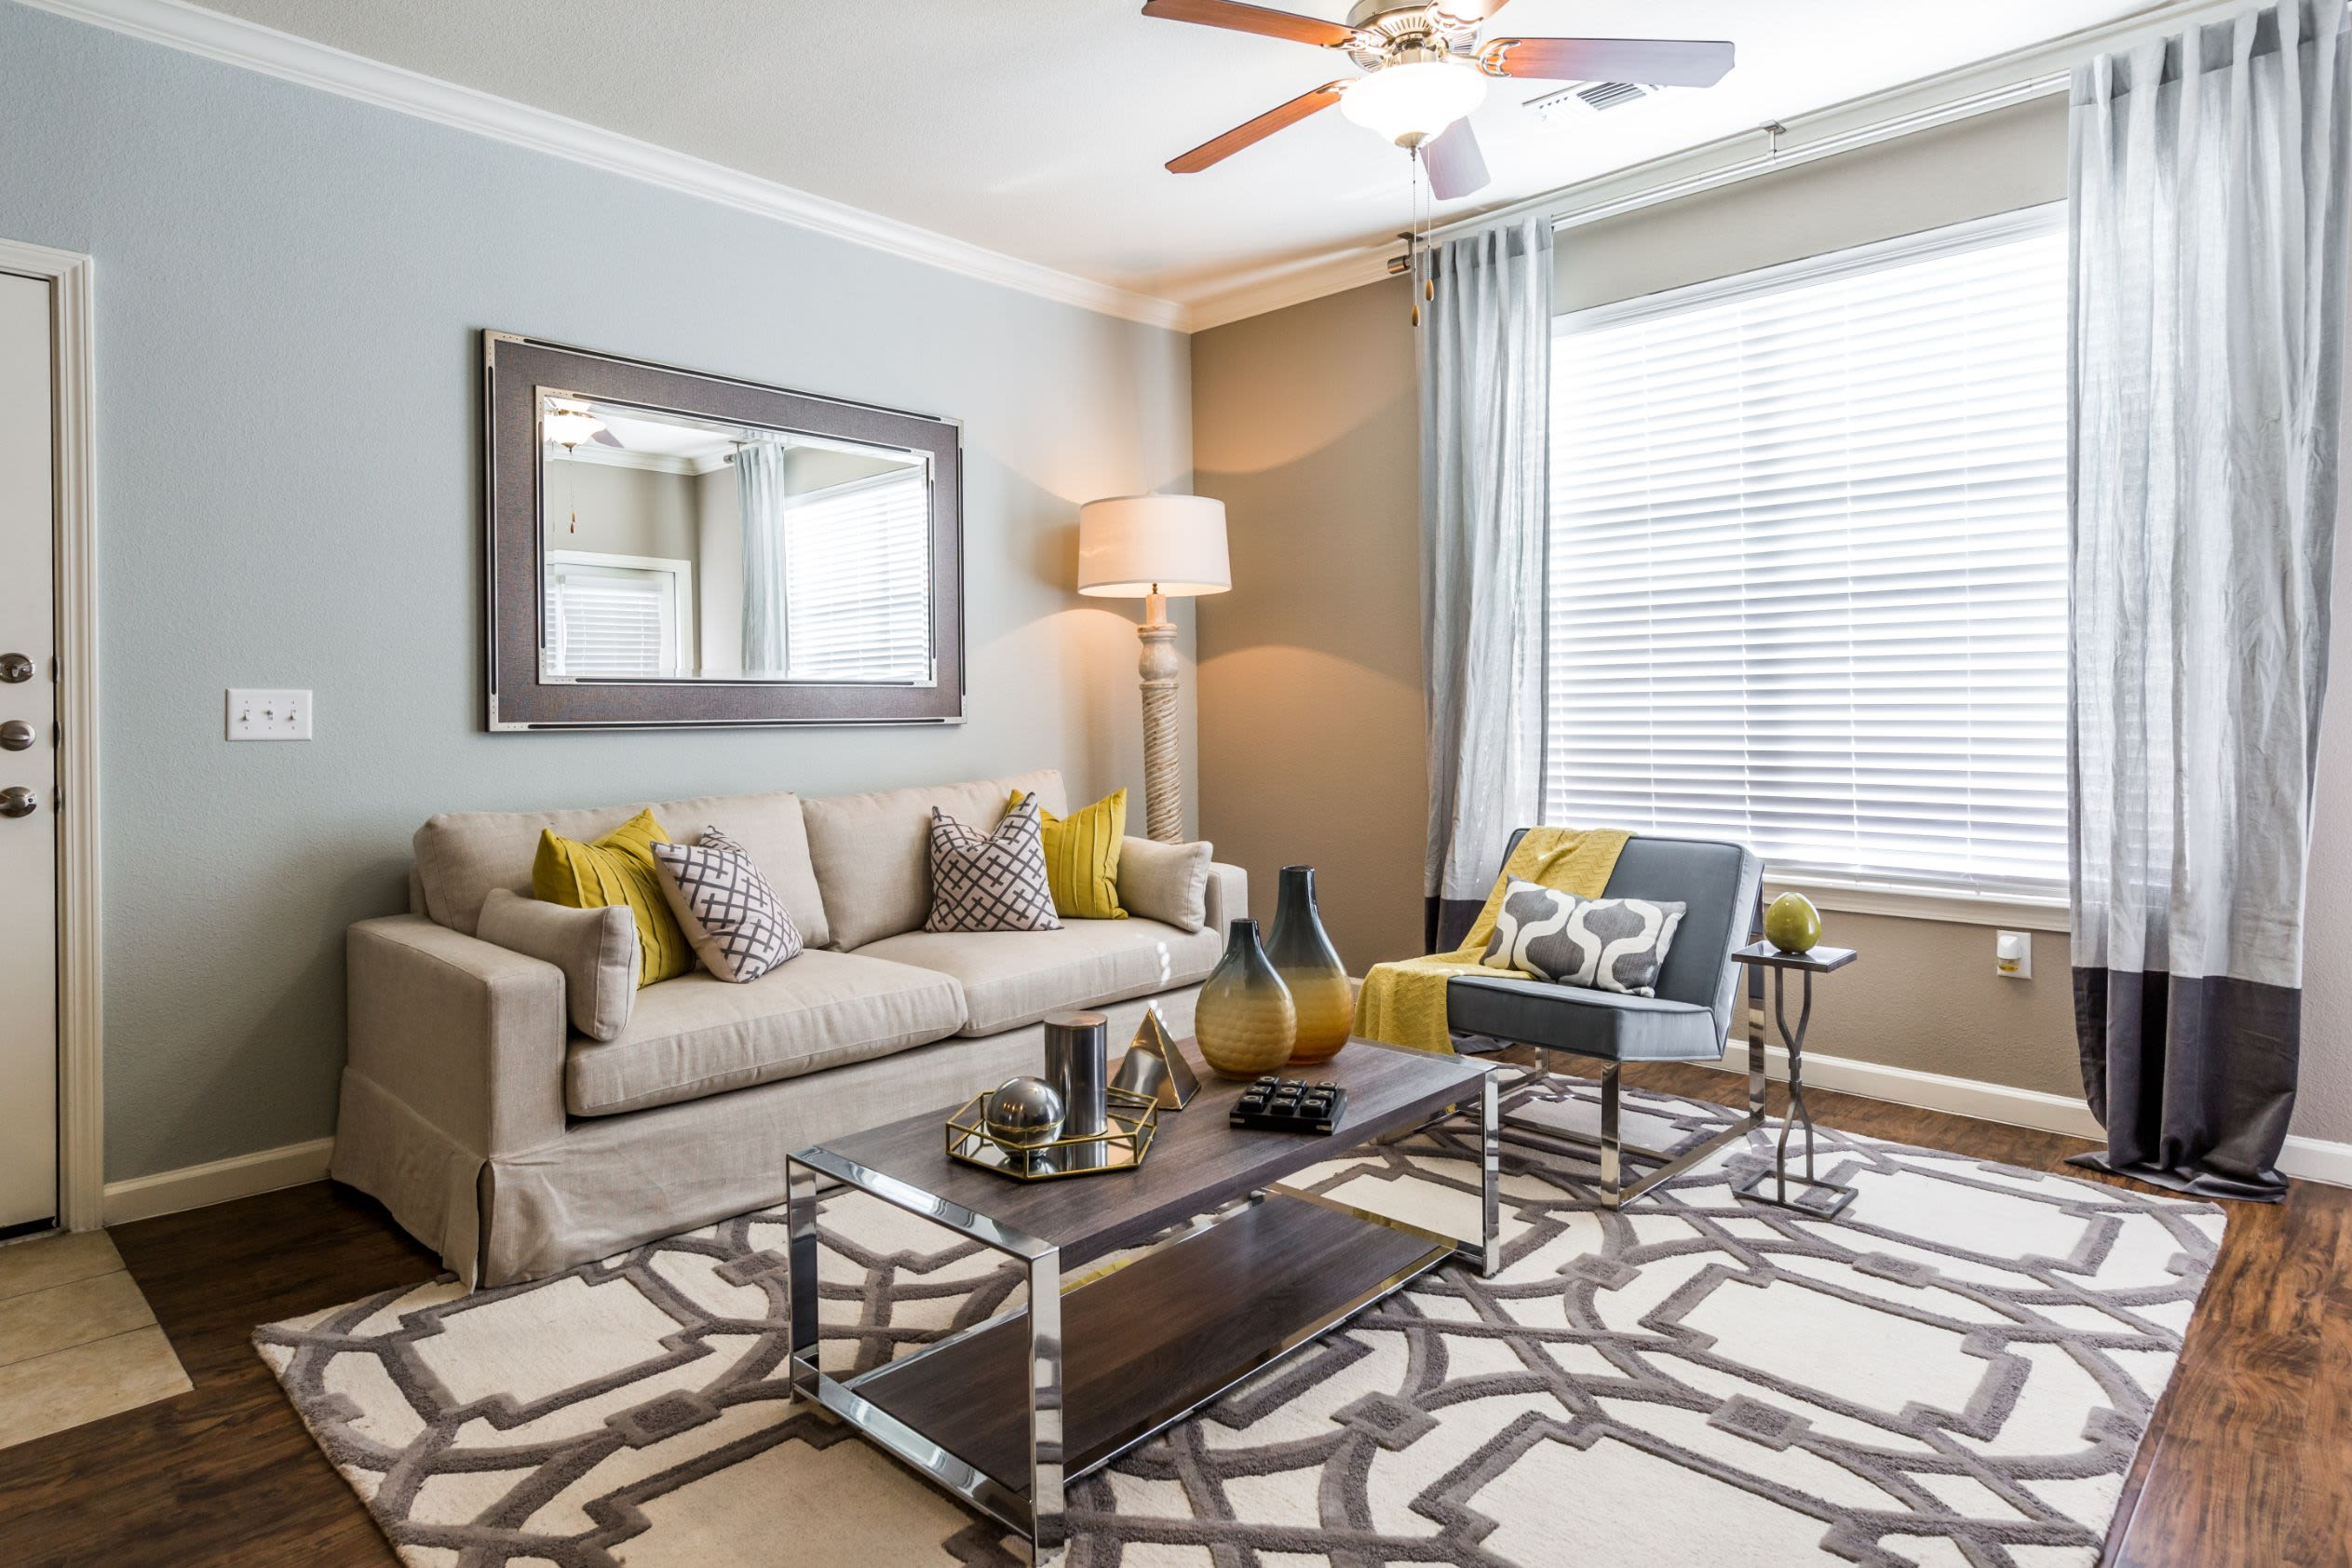 Living room with modern furnishings at Marquis at Crown Ridge in San Antonio, Texas